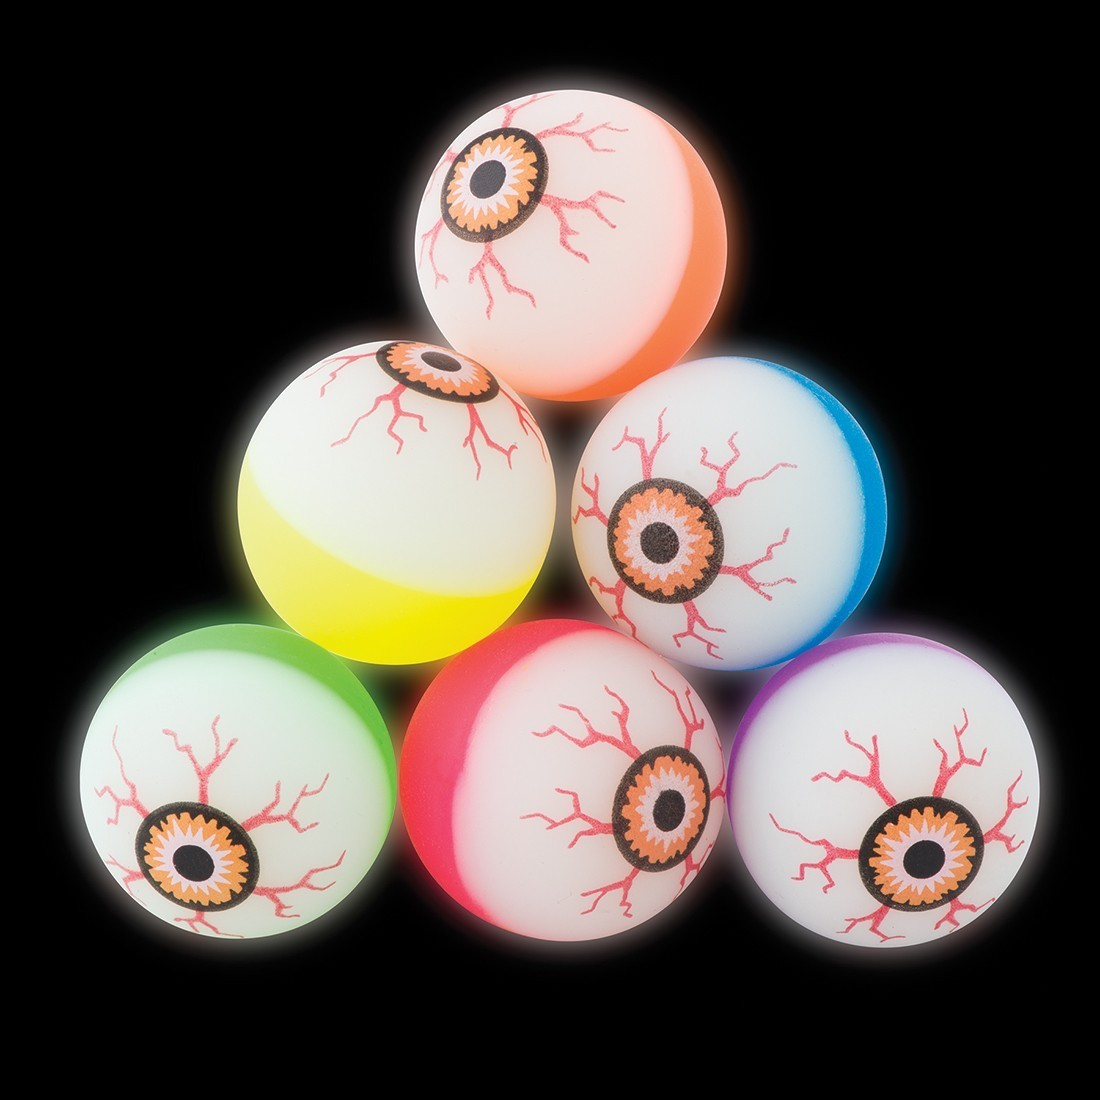 29mm Two-Tone Glow-in-the-Dark Eyeball Bouncing Balls [image]